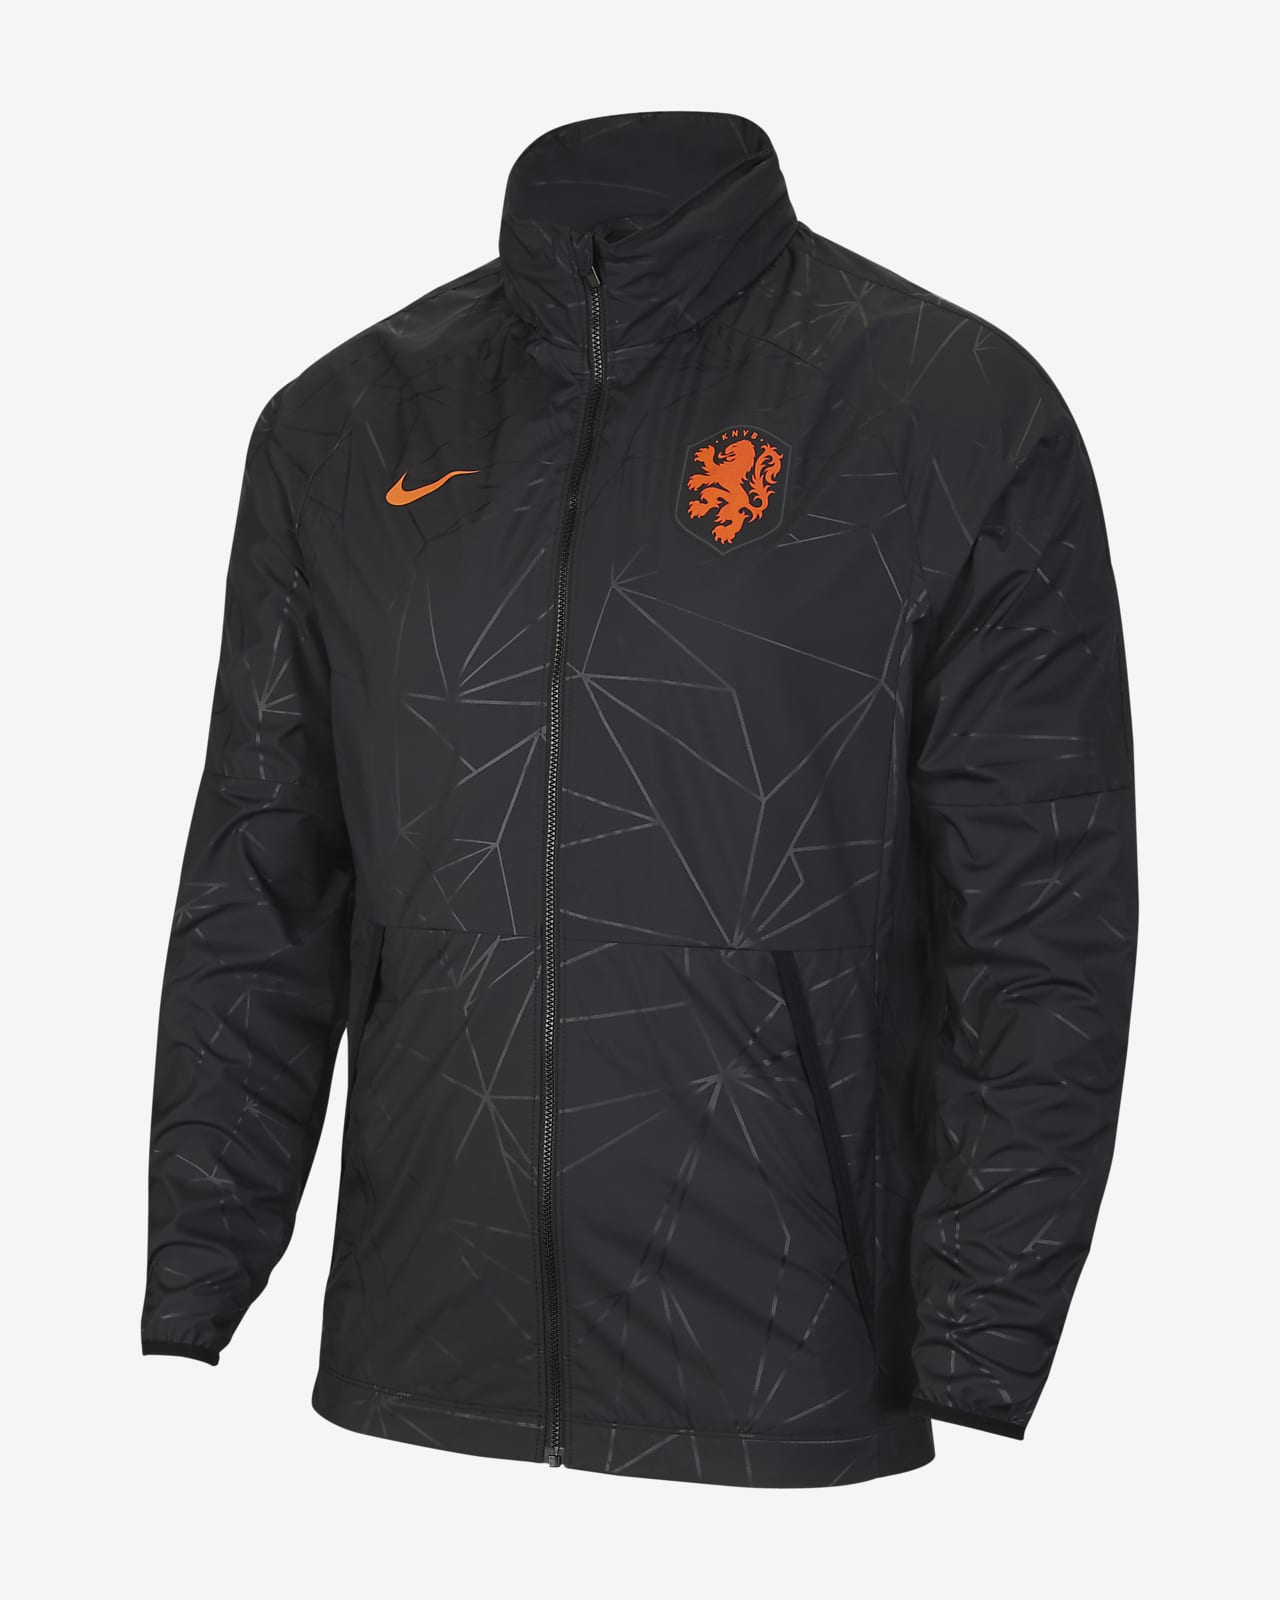 Netherlands Men's Football Jacket